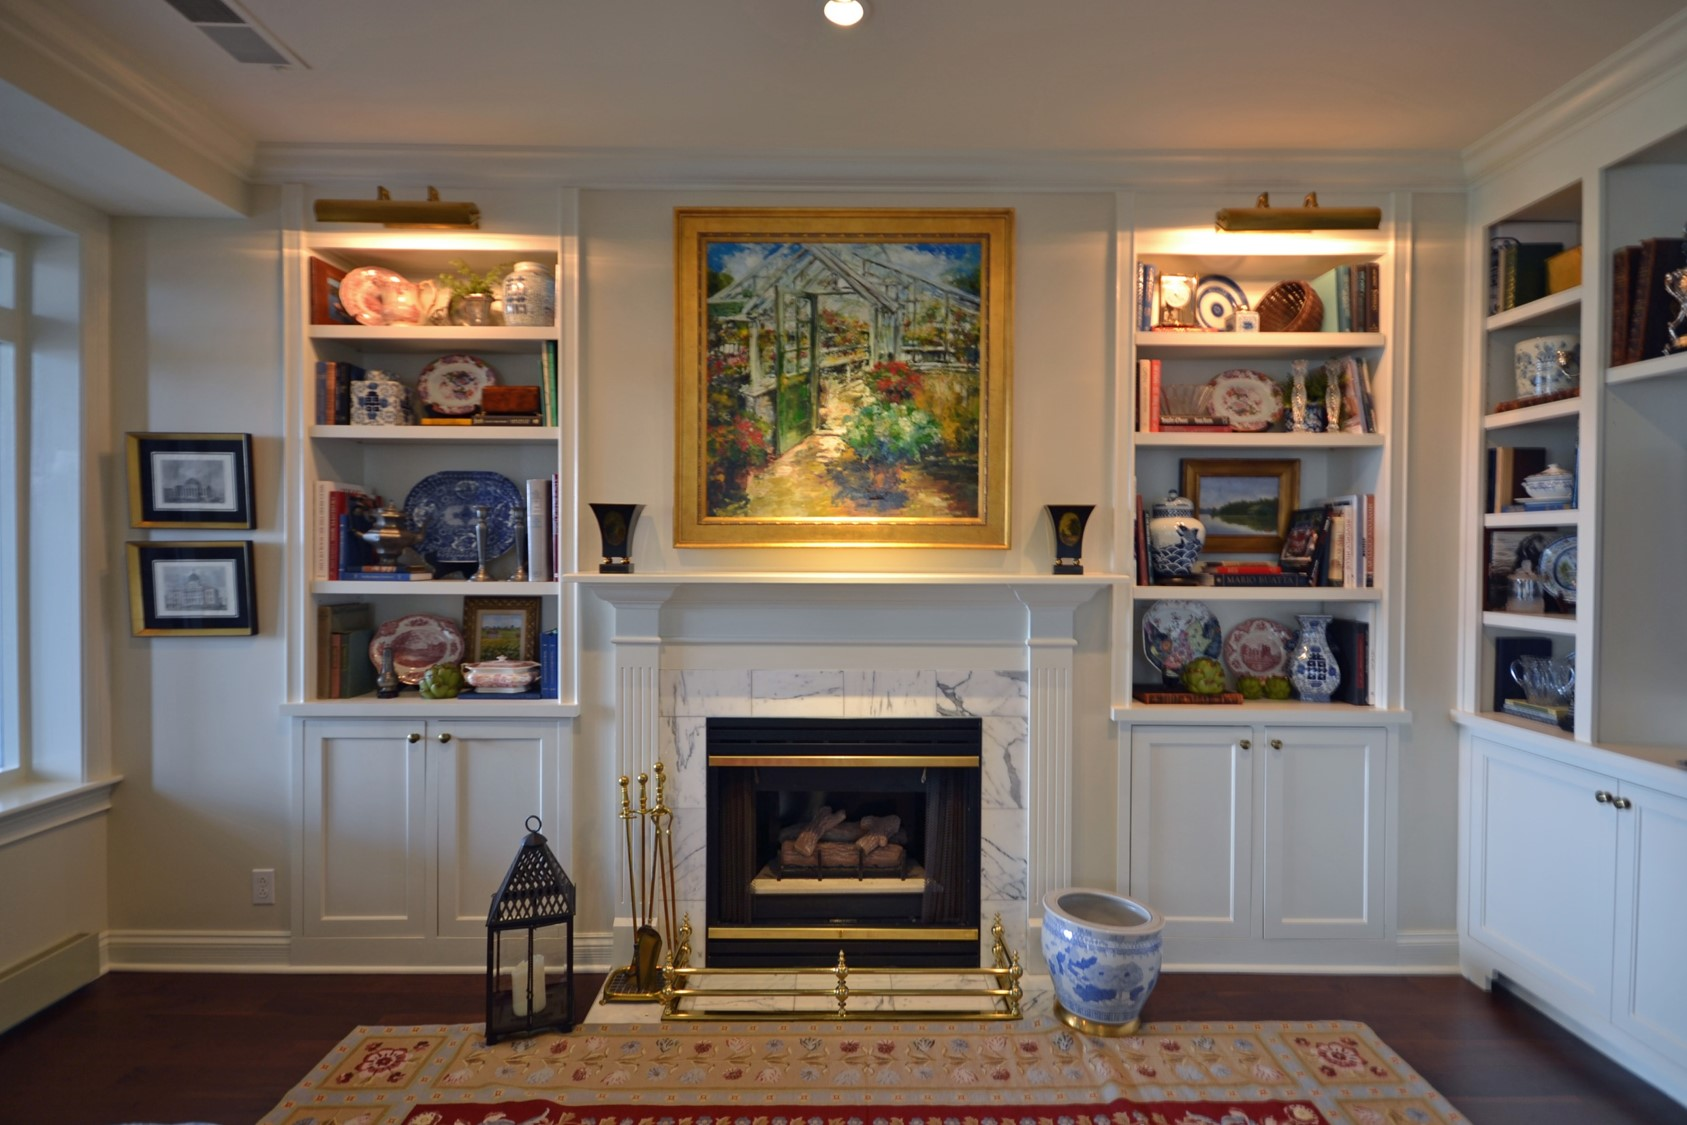 We dig bookcase lights. We are the exclusive representatives of a number of fantastic lighting lines from traditional to contemporary and everything in-between. Come get lit with us.